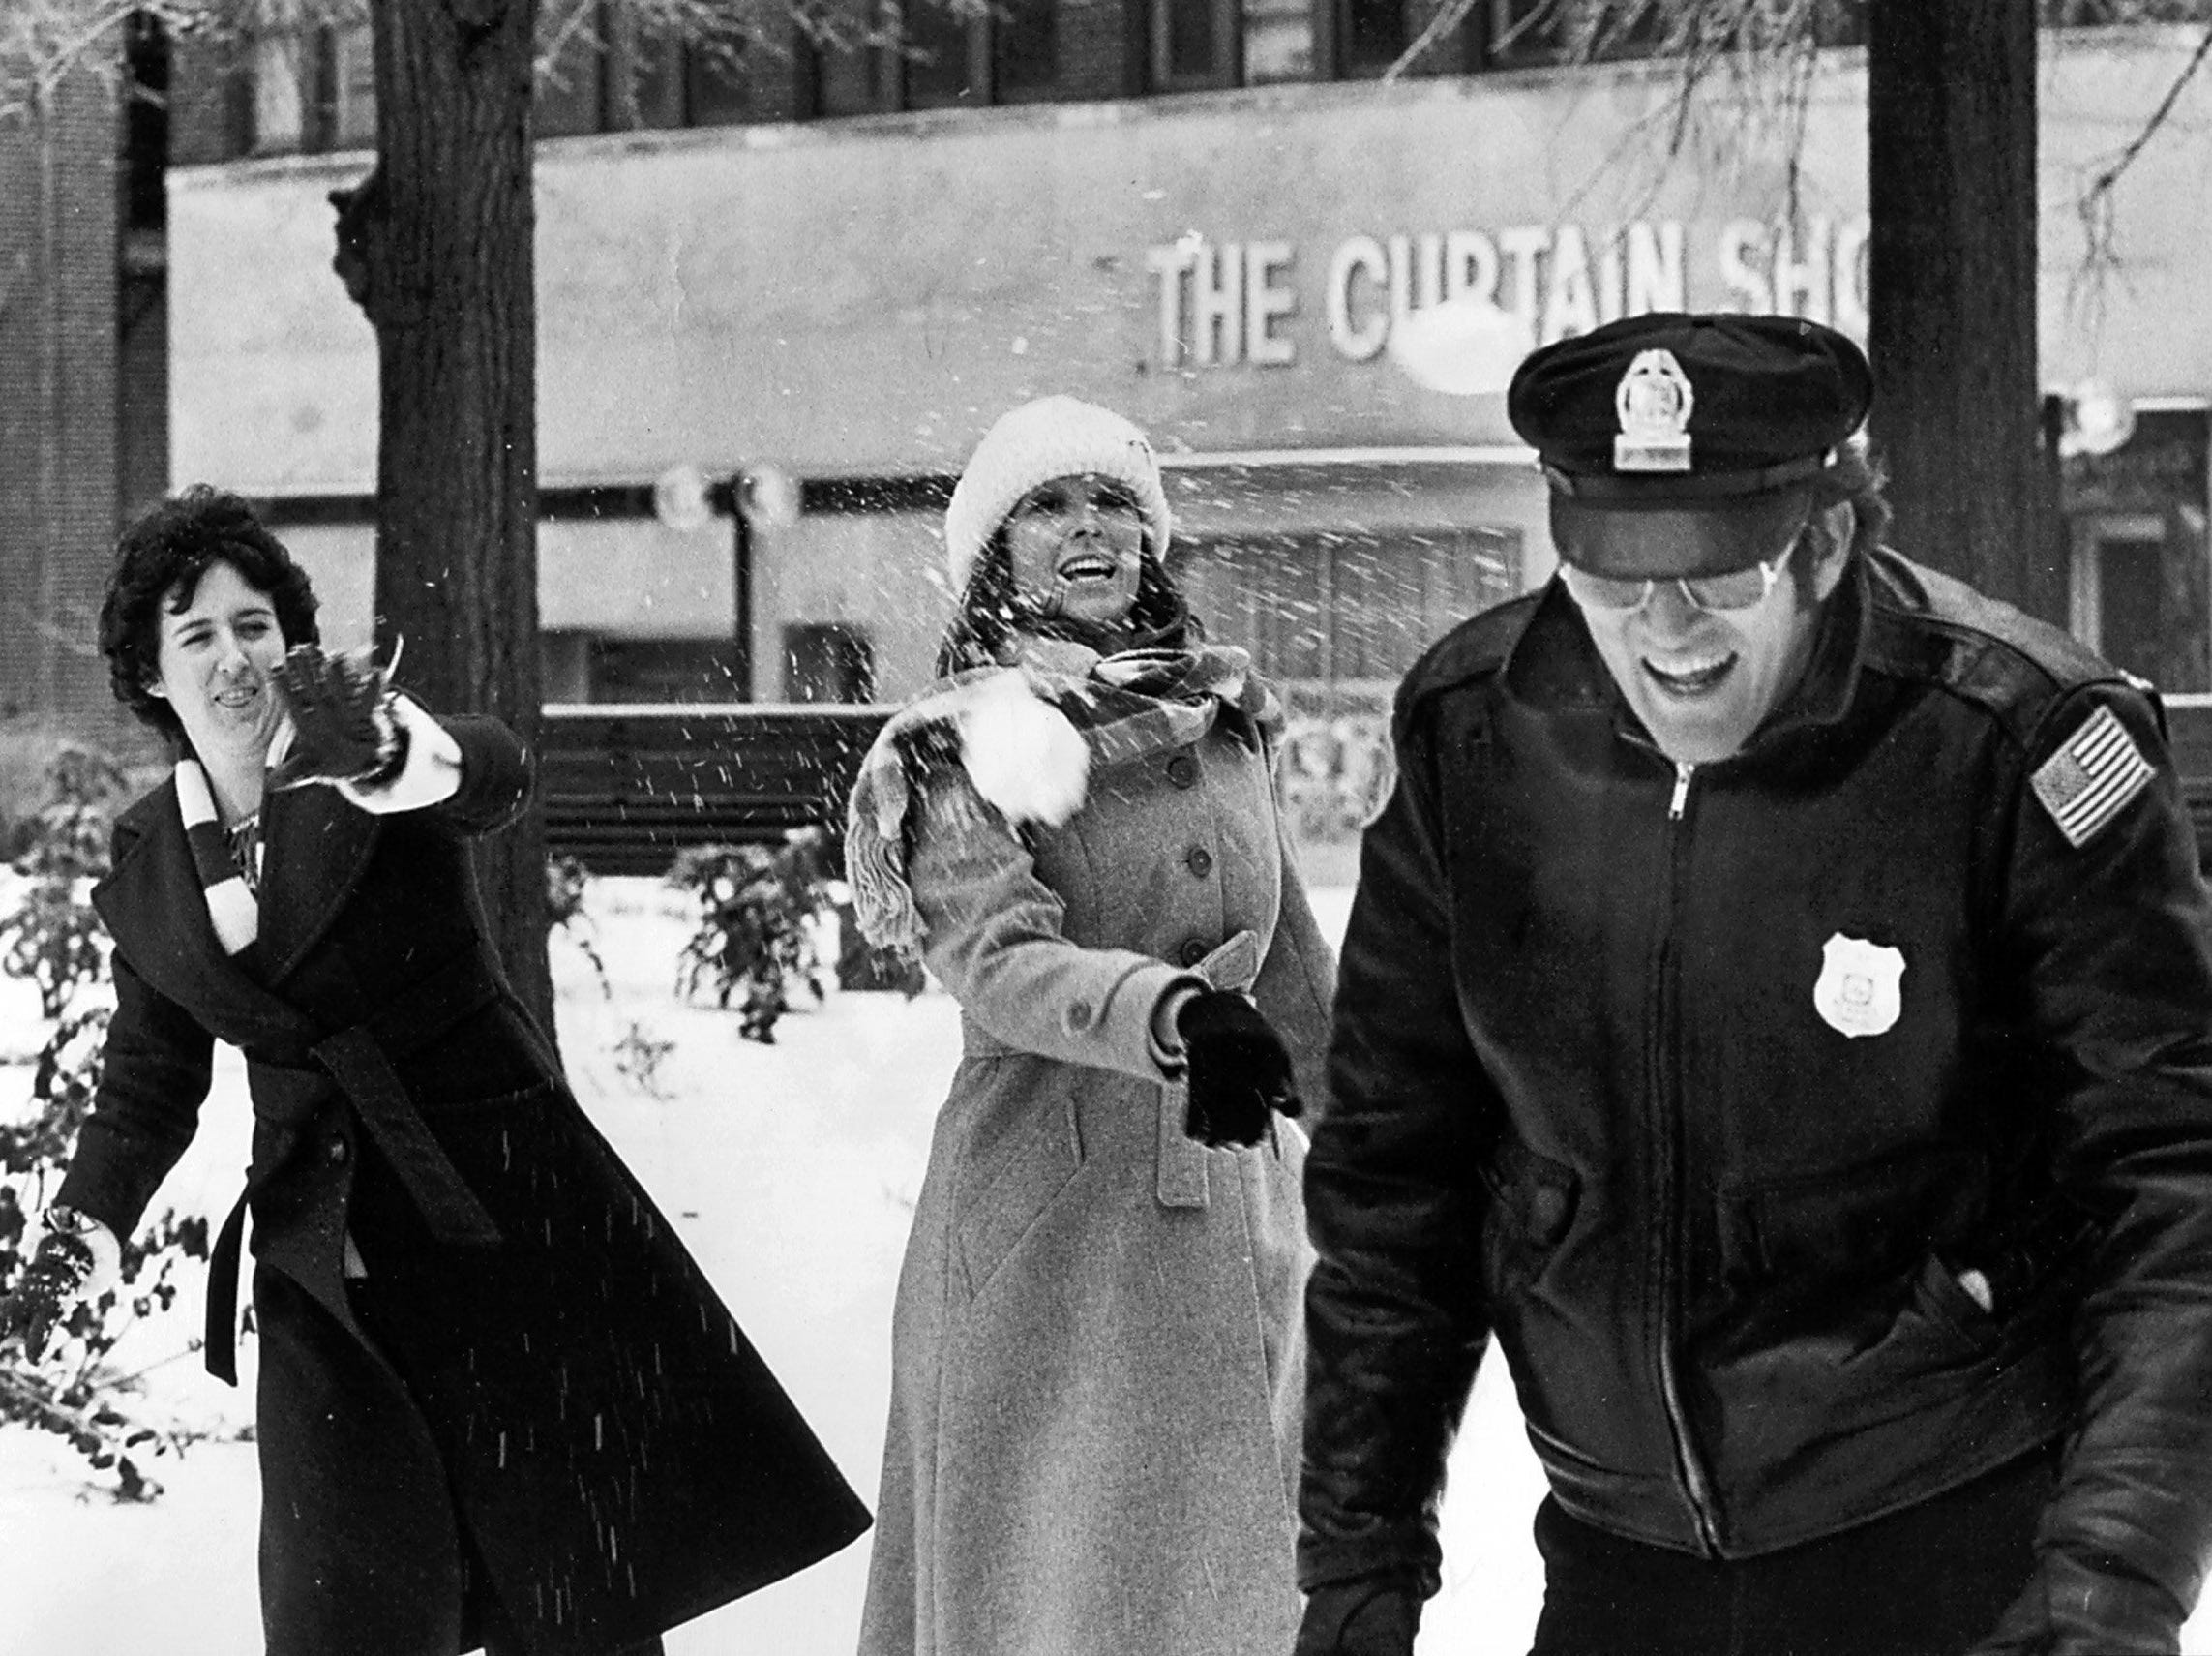 Memphis Policeman W.L. Sanders (Right) got a volley of snowballs from Pam Wortham (Left) and Cathy Reves (Center) during the lunch hour on 12 Jan 1978. They work at W.R. Grace.